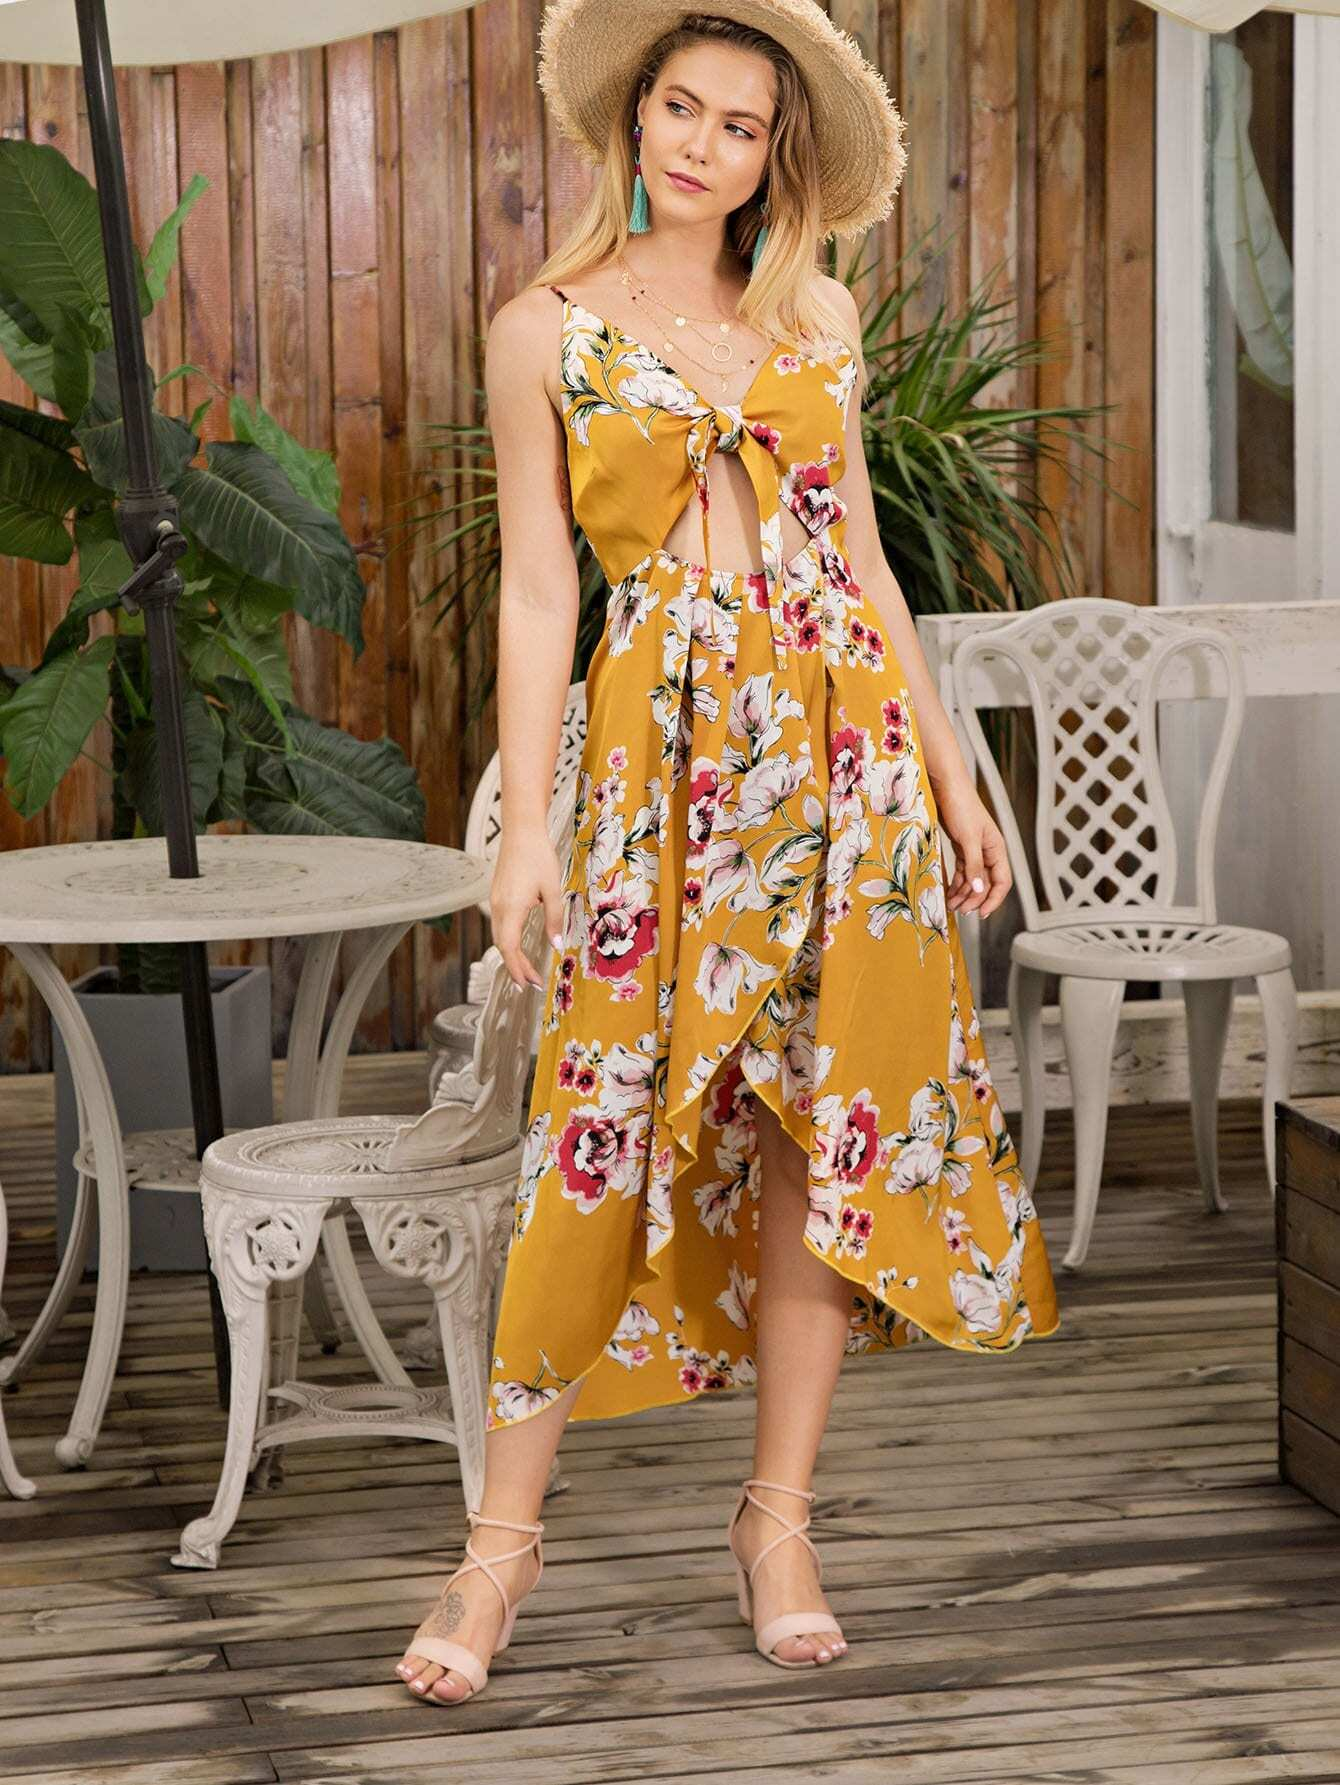 Floral Print Knot Front Cut Out Asymmetrical Hem Dress melendi a coruña